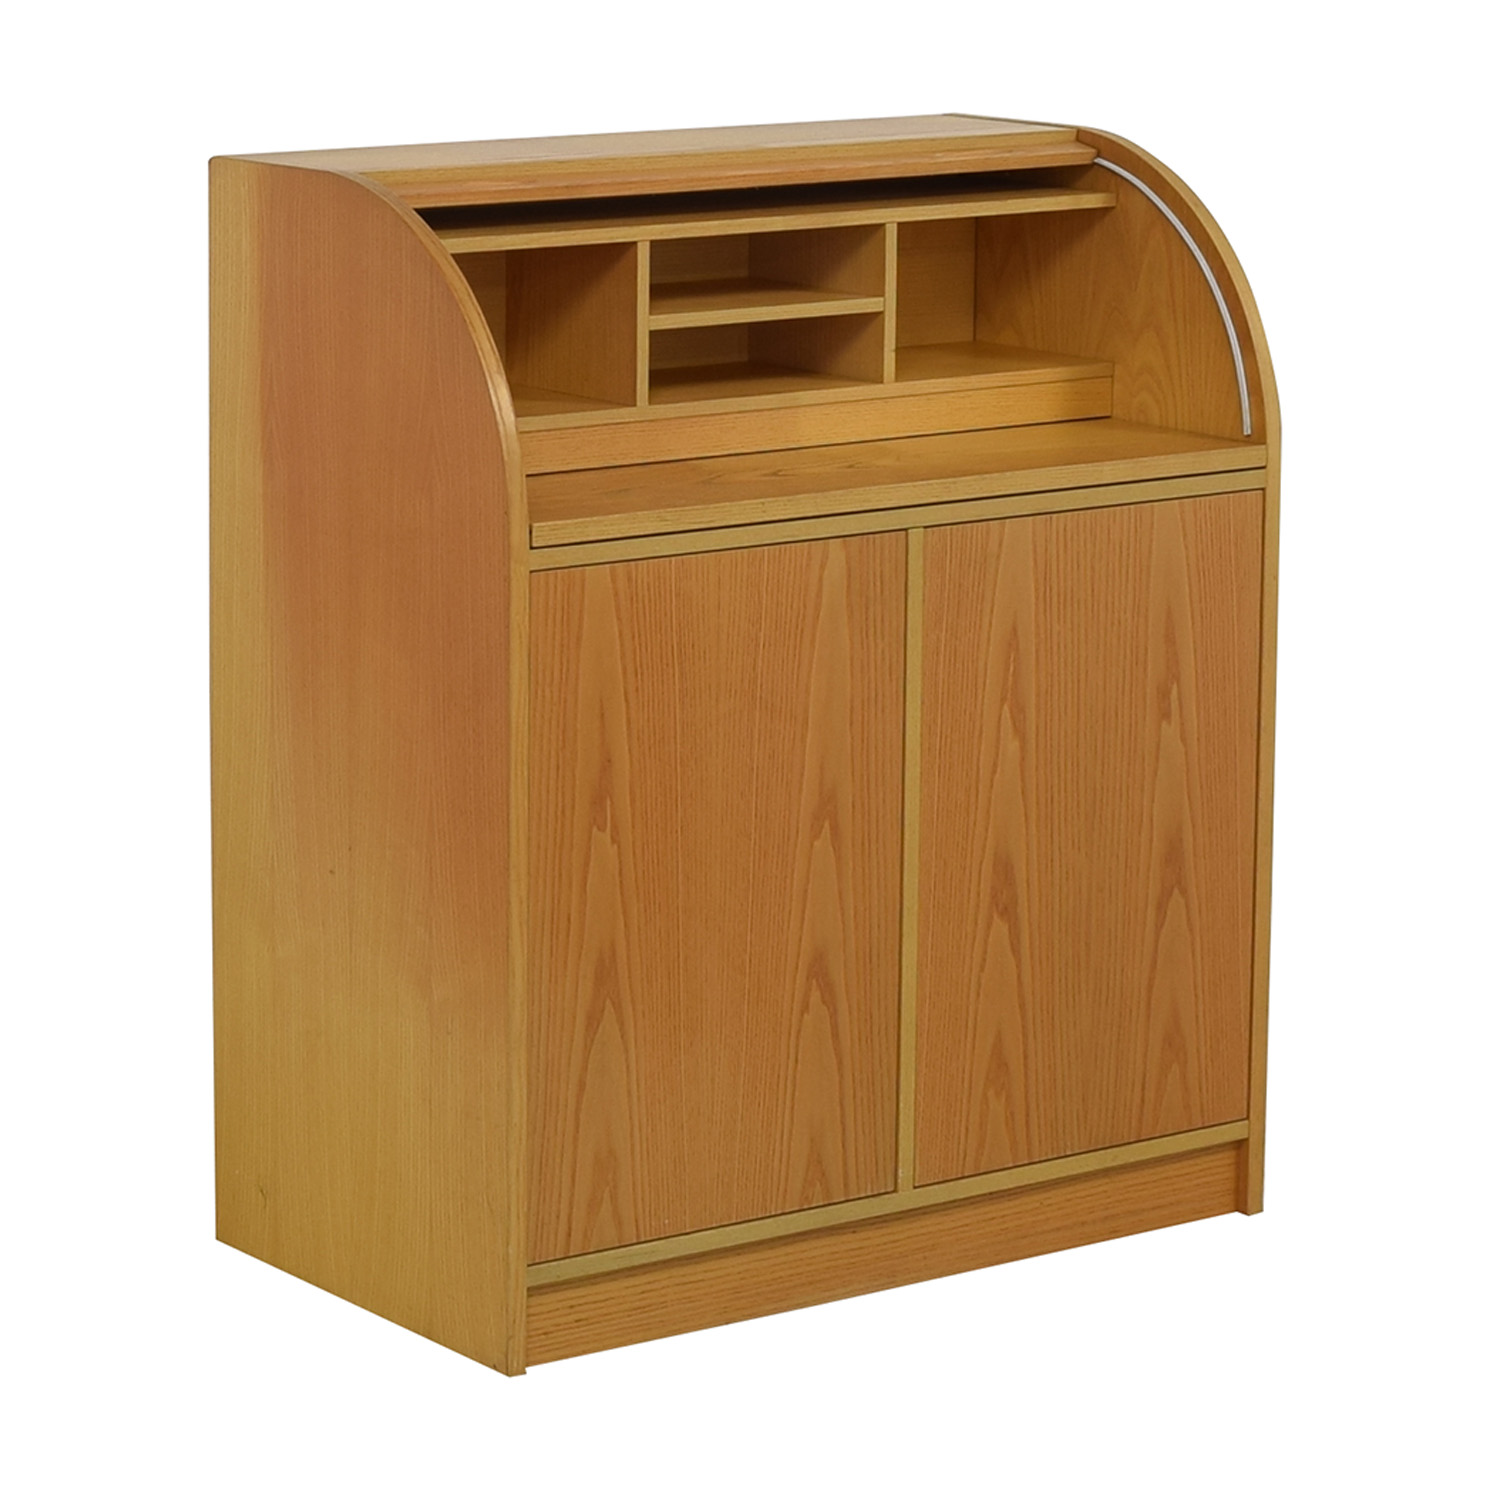 Roll Top Desk used